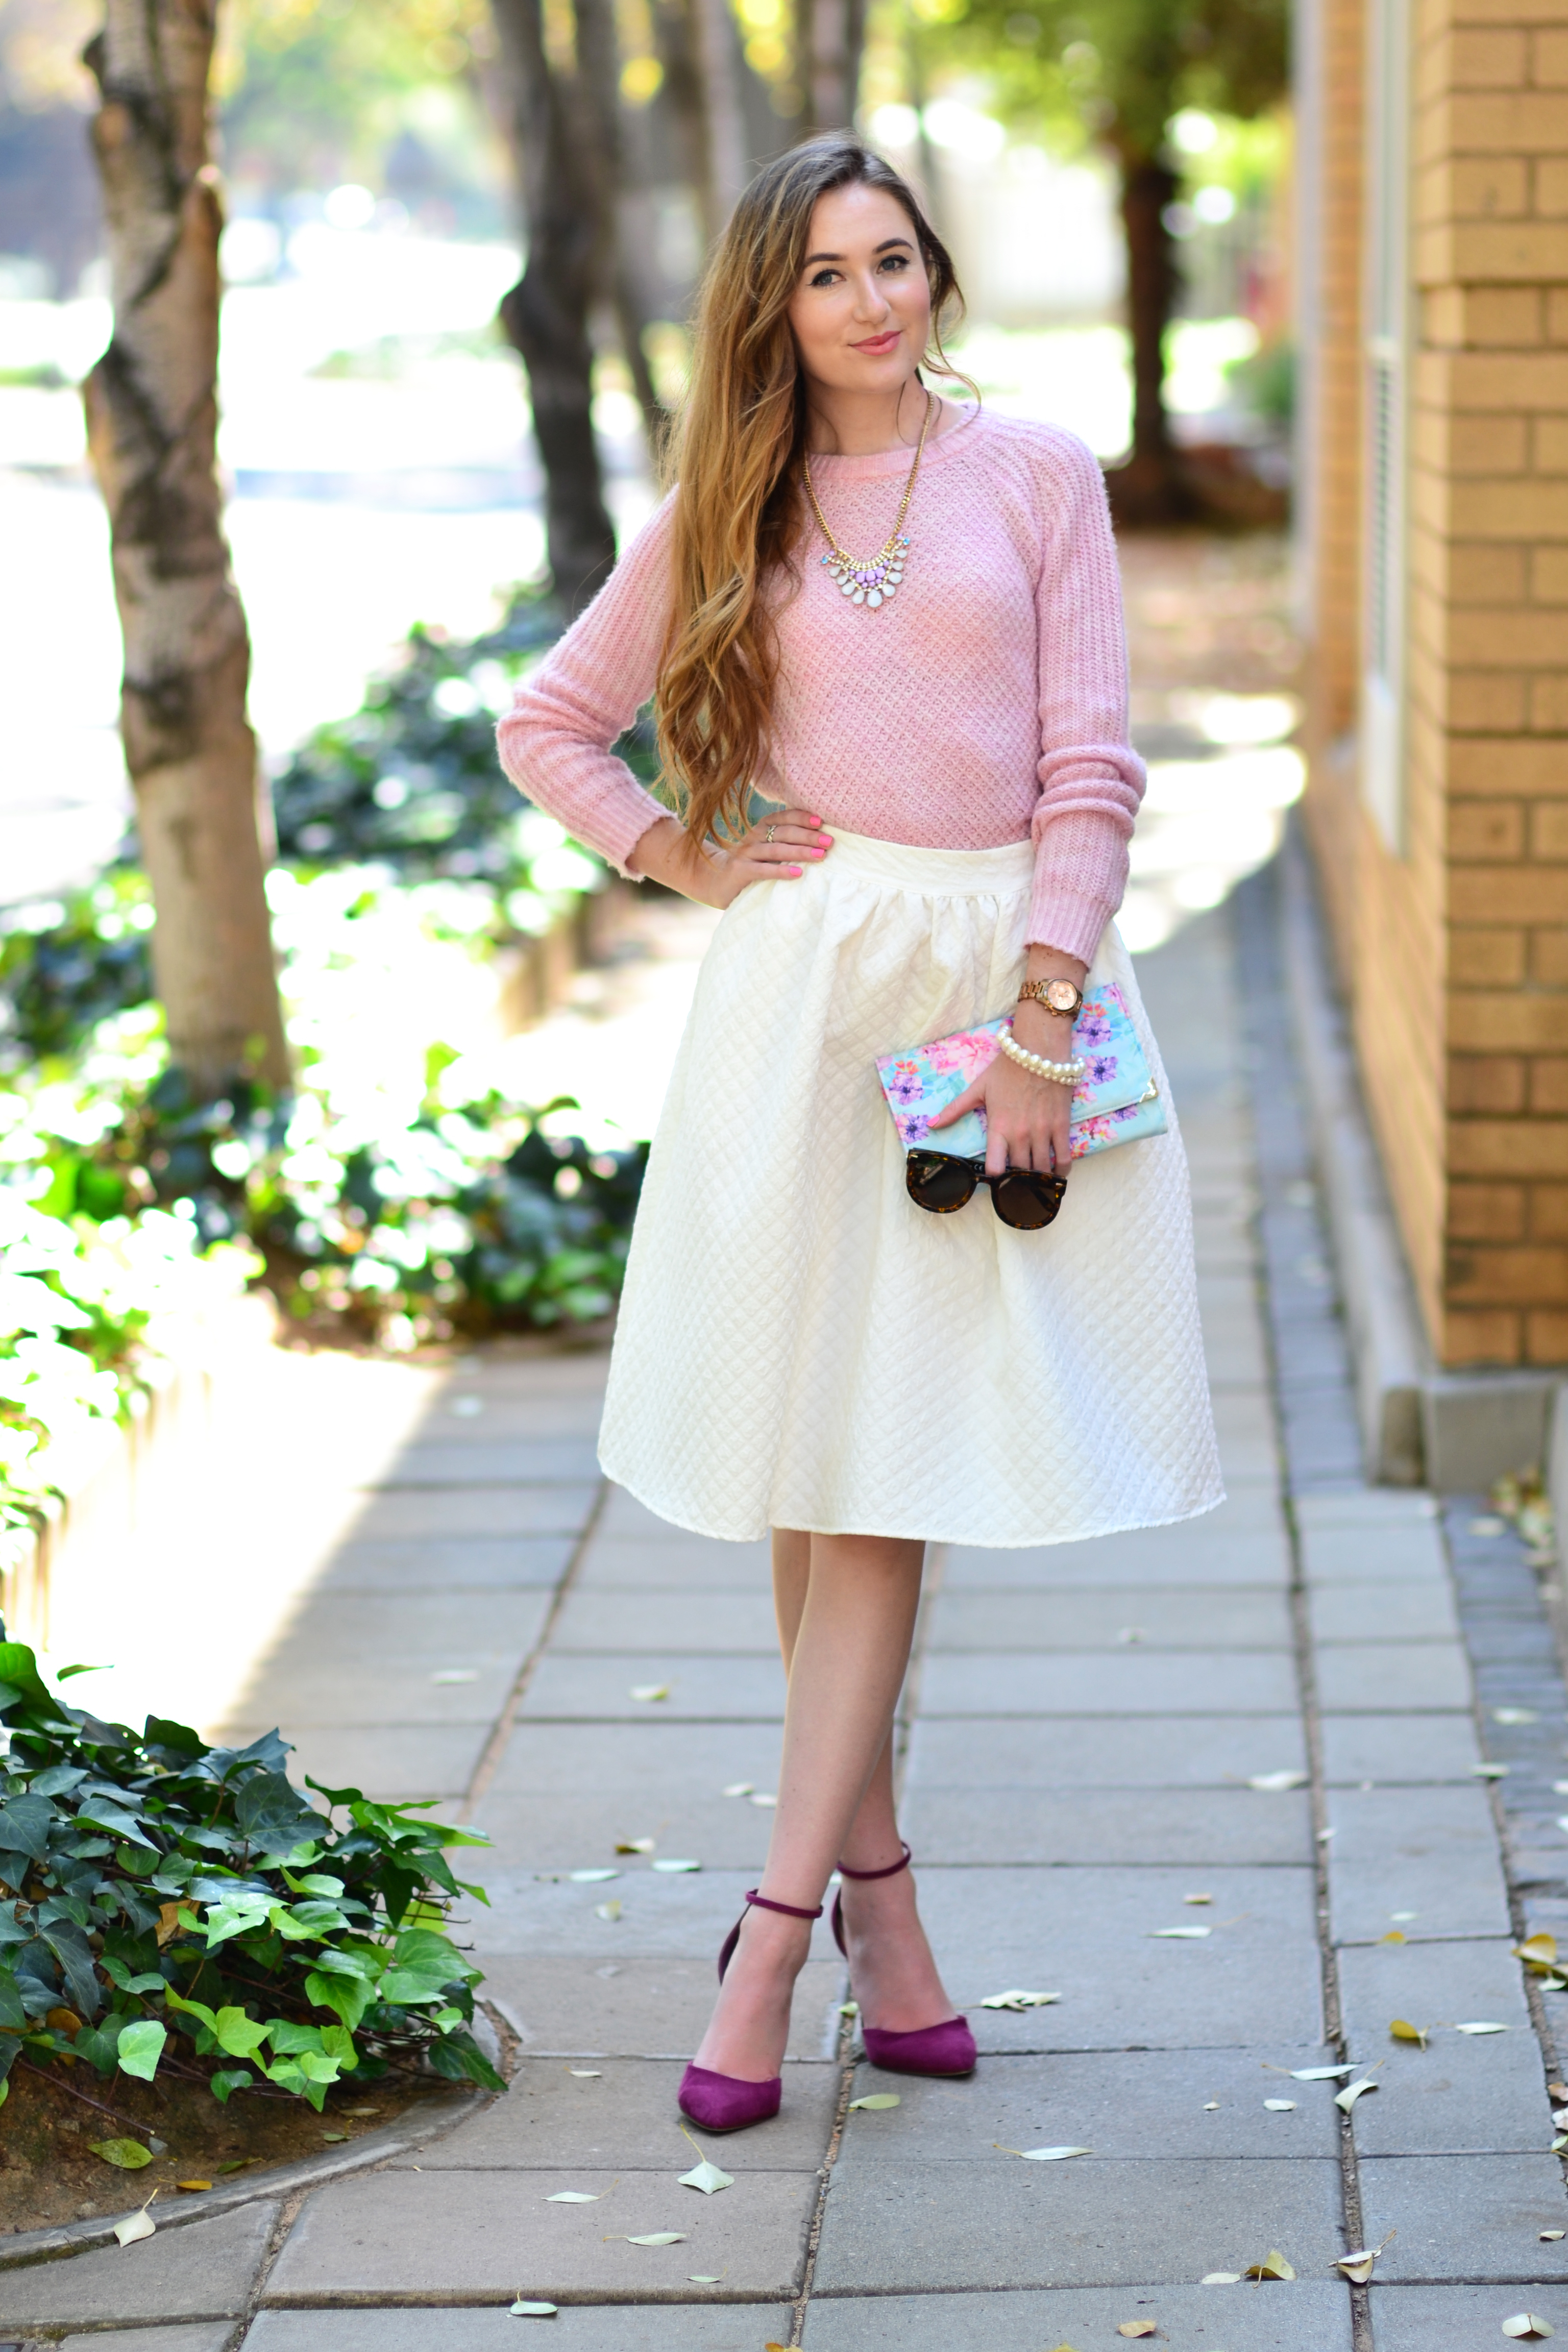 Arum Lilea - Feminine Dressing - Truworths pink knit sweater - MRP white midi skirt - Forever New suede pumps - Forever New floral clutch purse